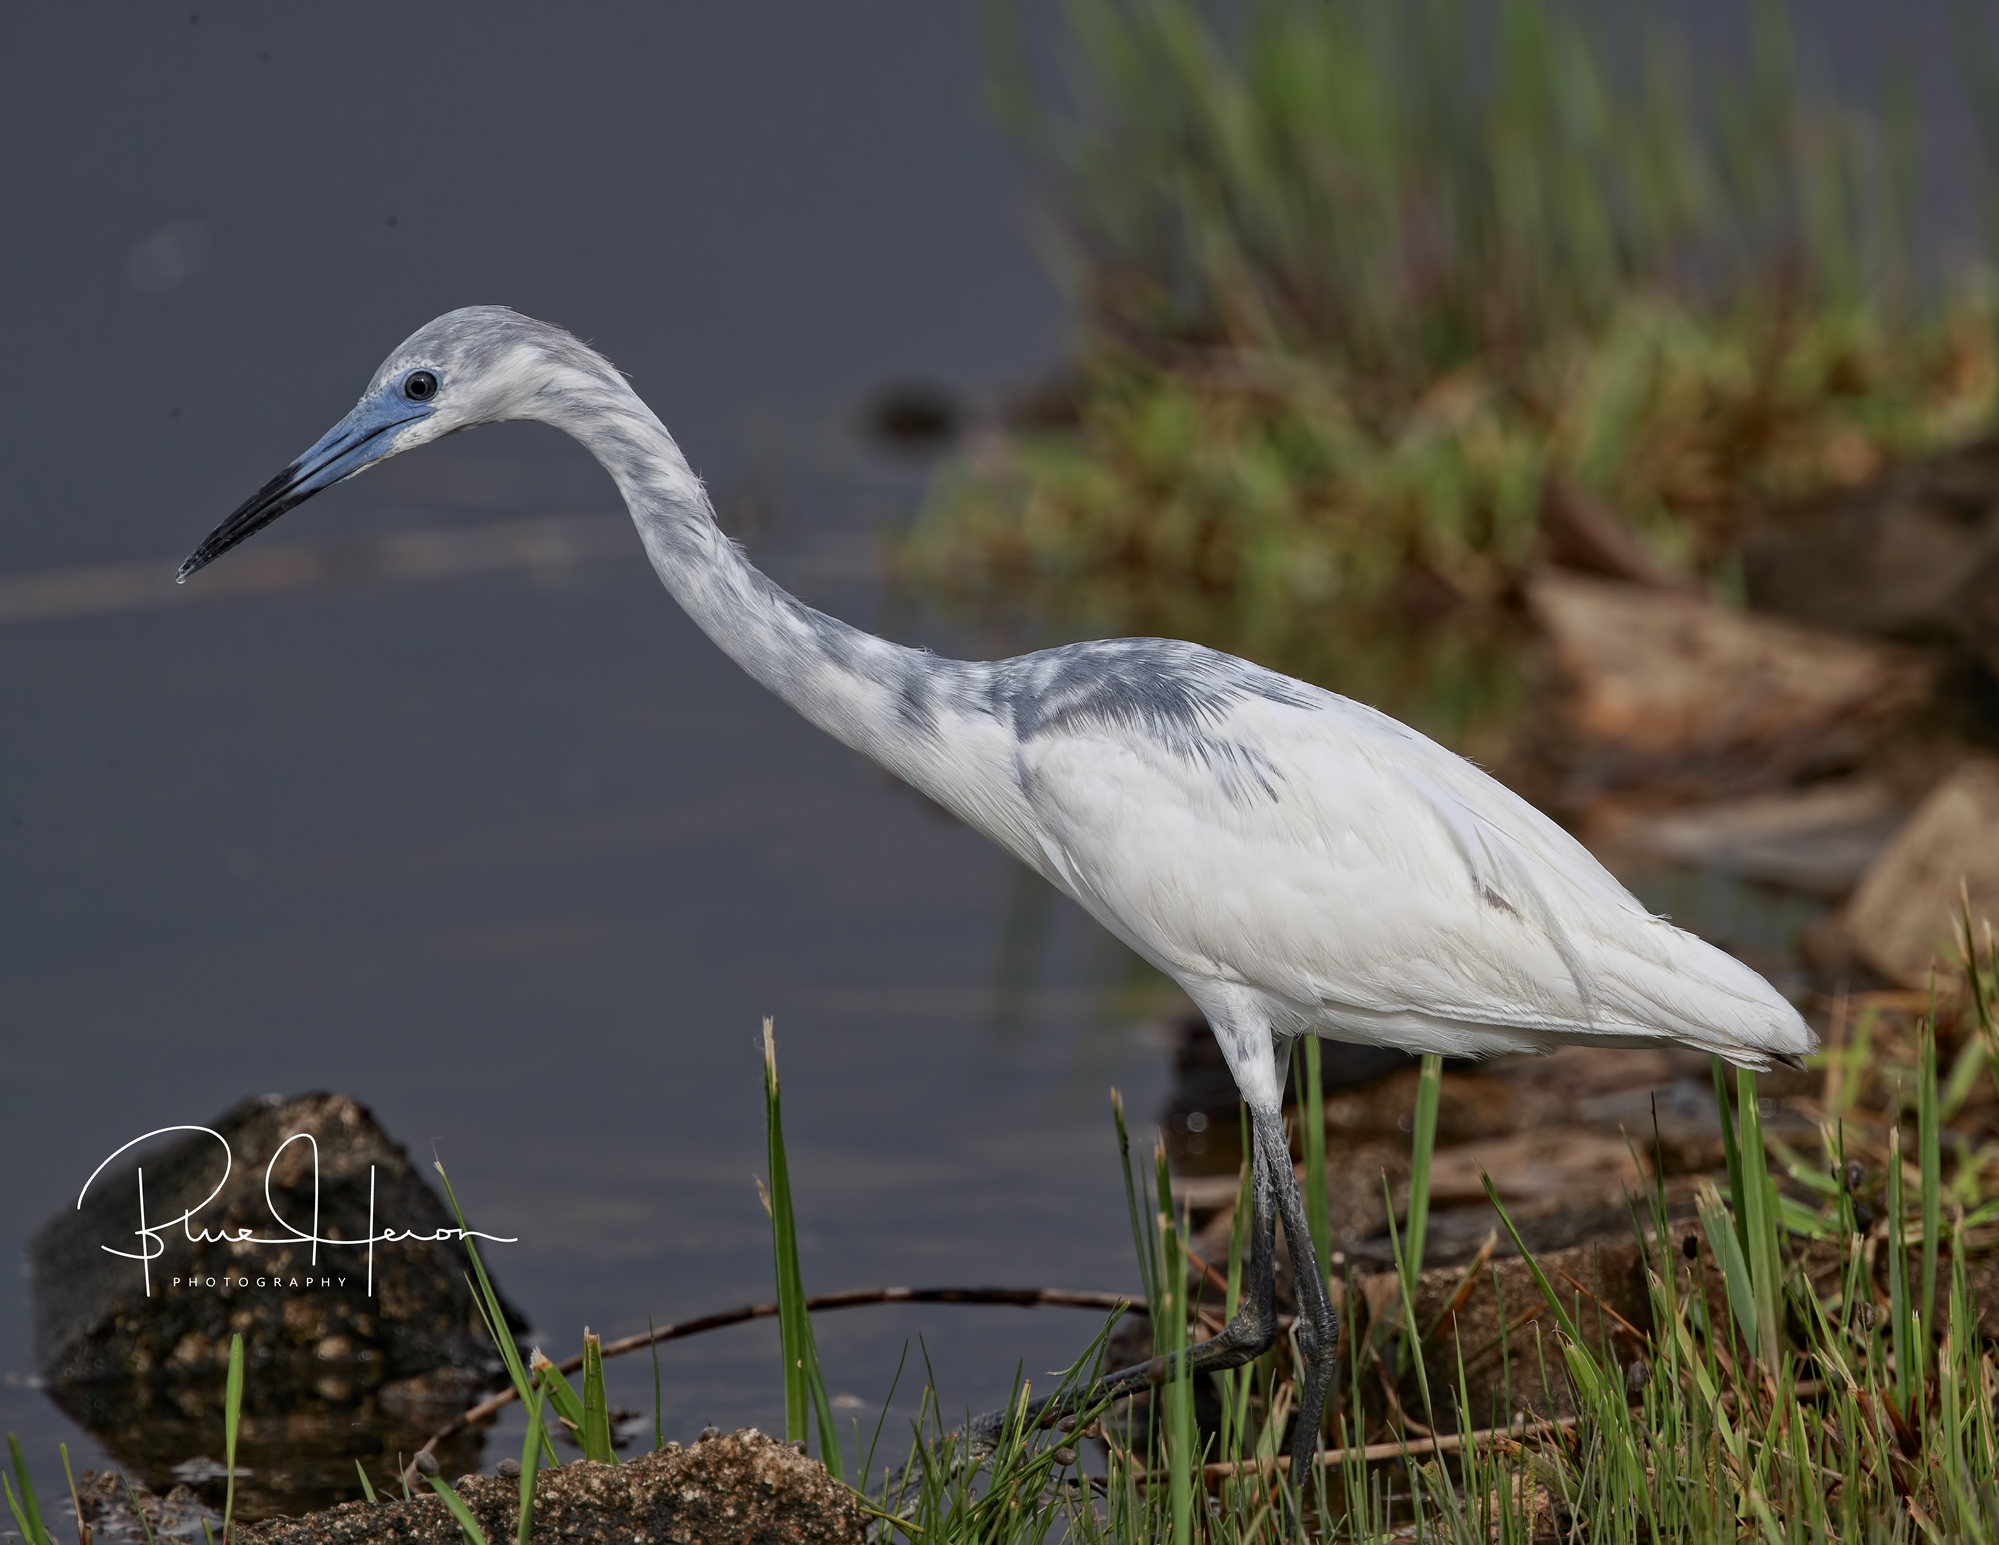 Bob Jr, the son of Broward Bob the Little Blue Heron was there to see us off too!